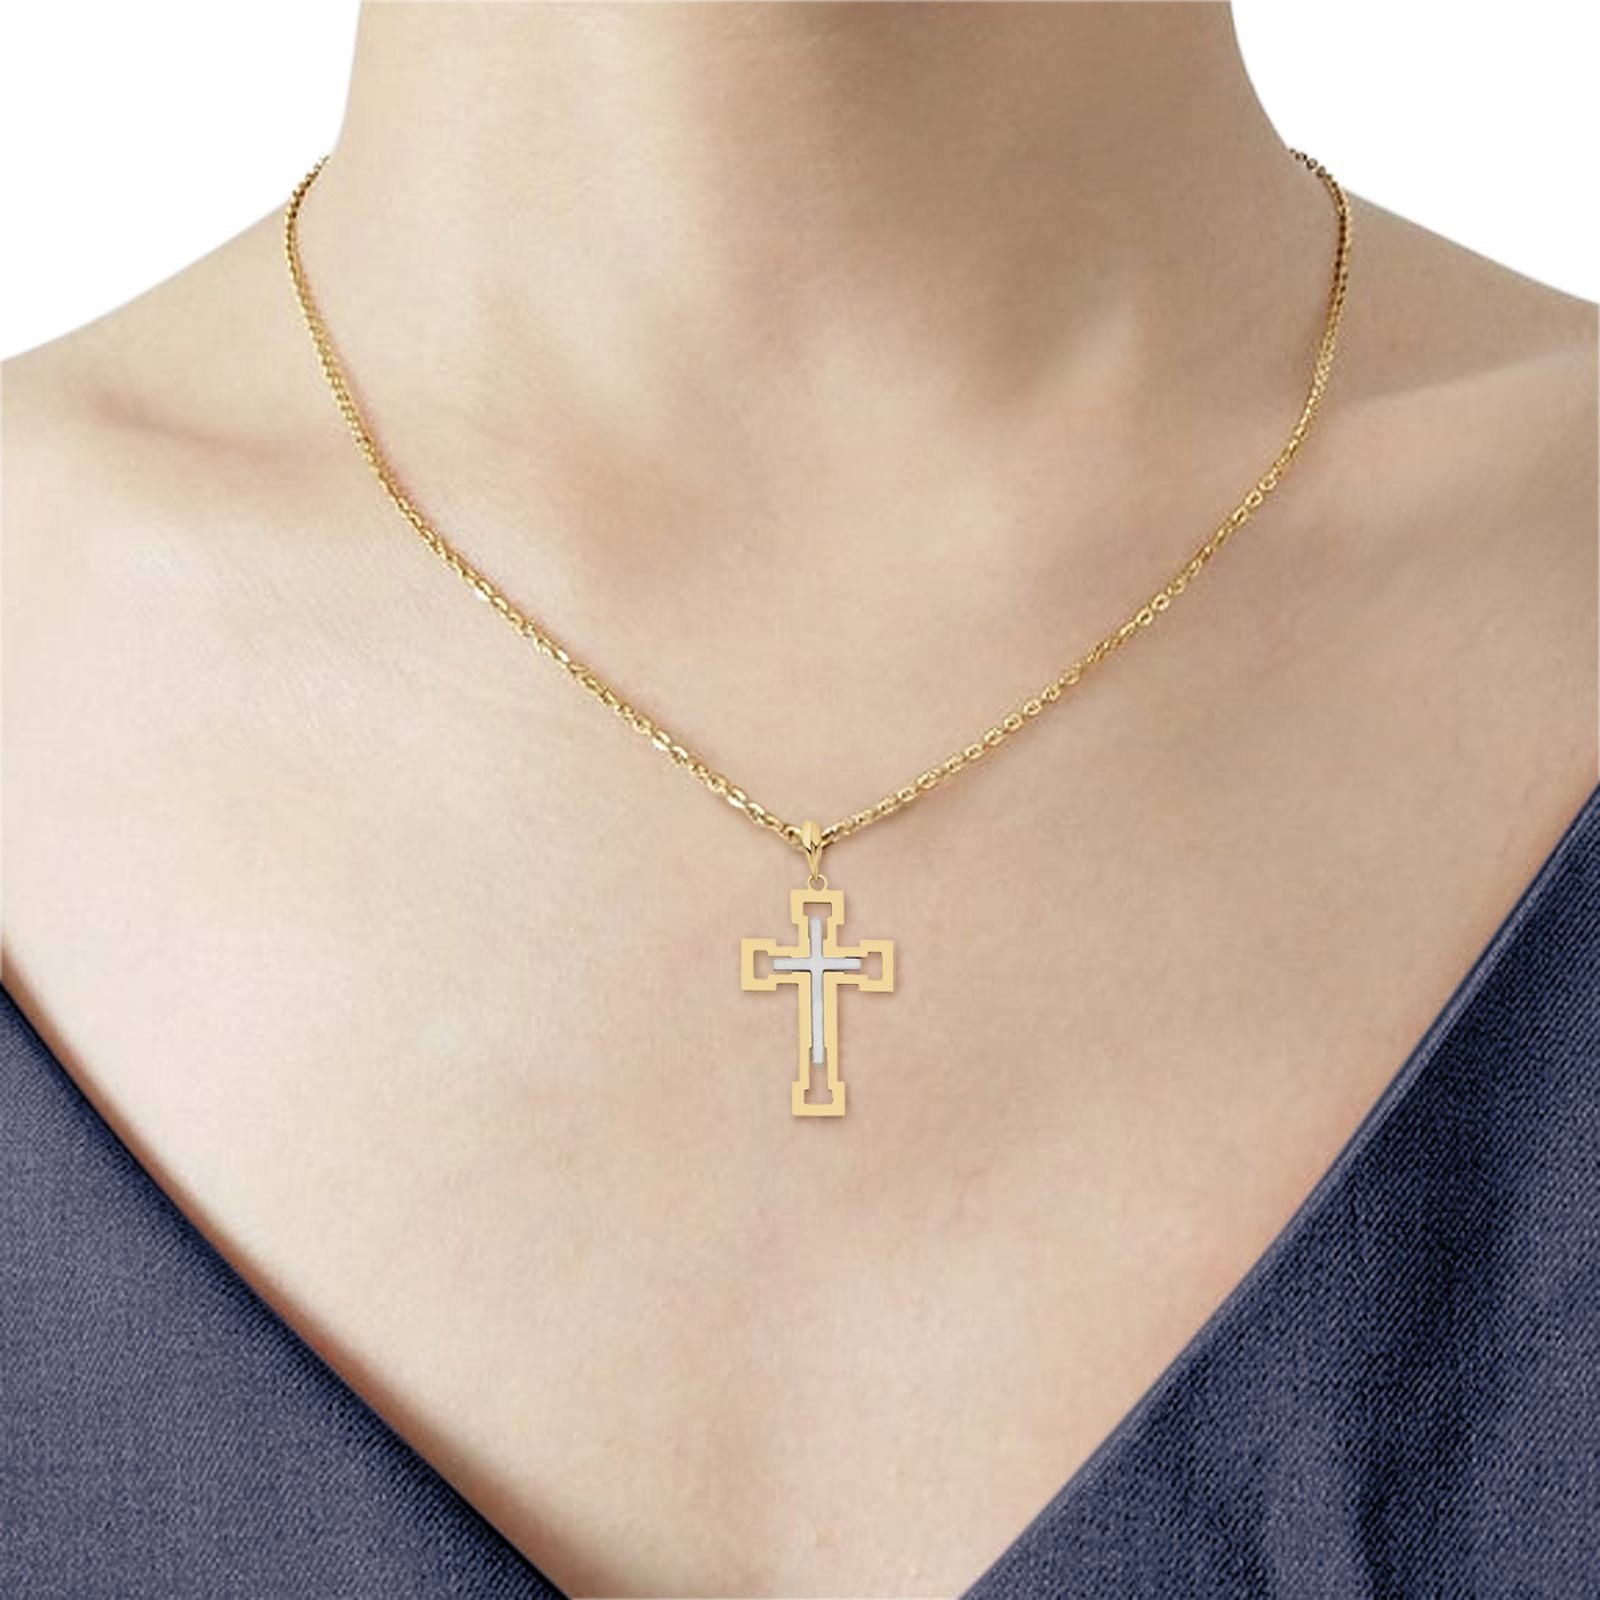 Two Tone 14K Gold Real Religious Crucifix Charm Pendant 31mmX21mm 1.5grams